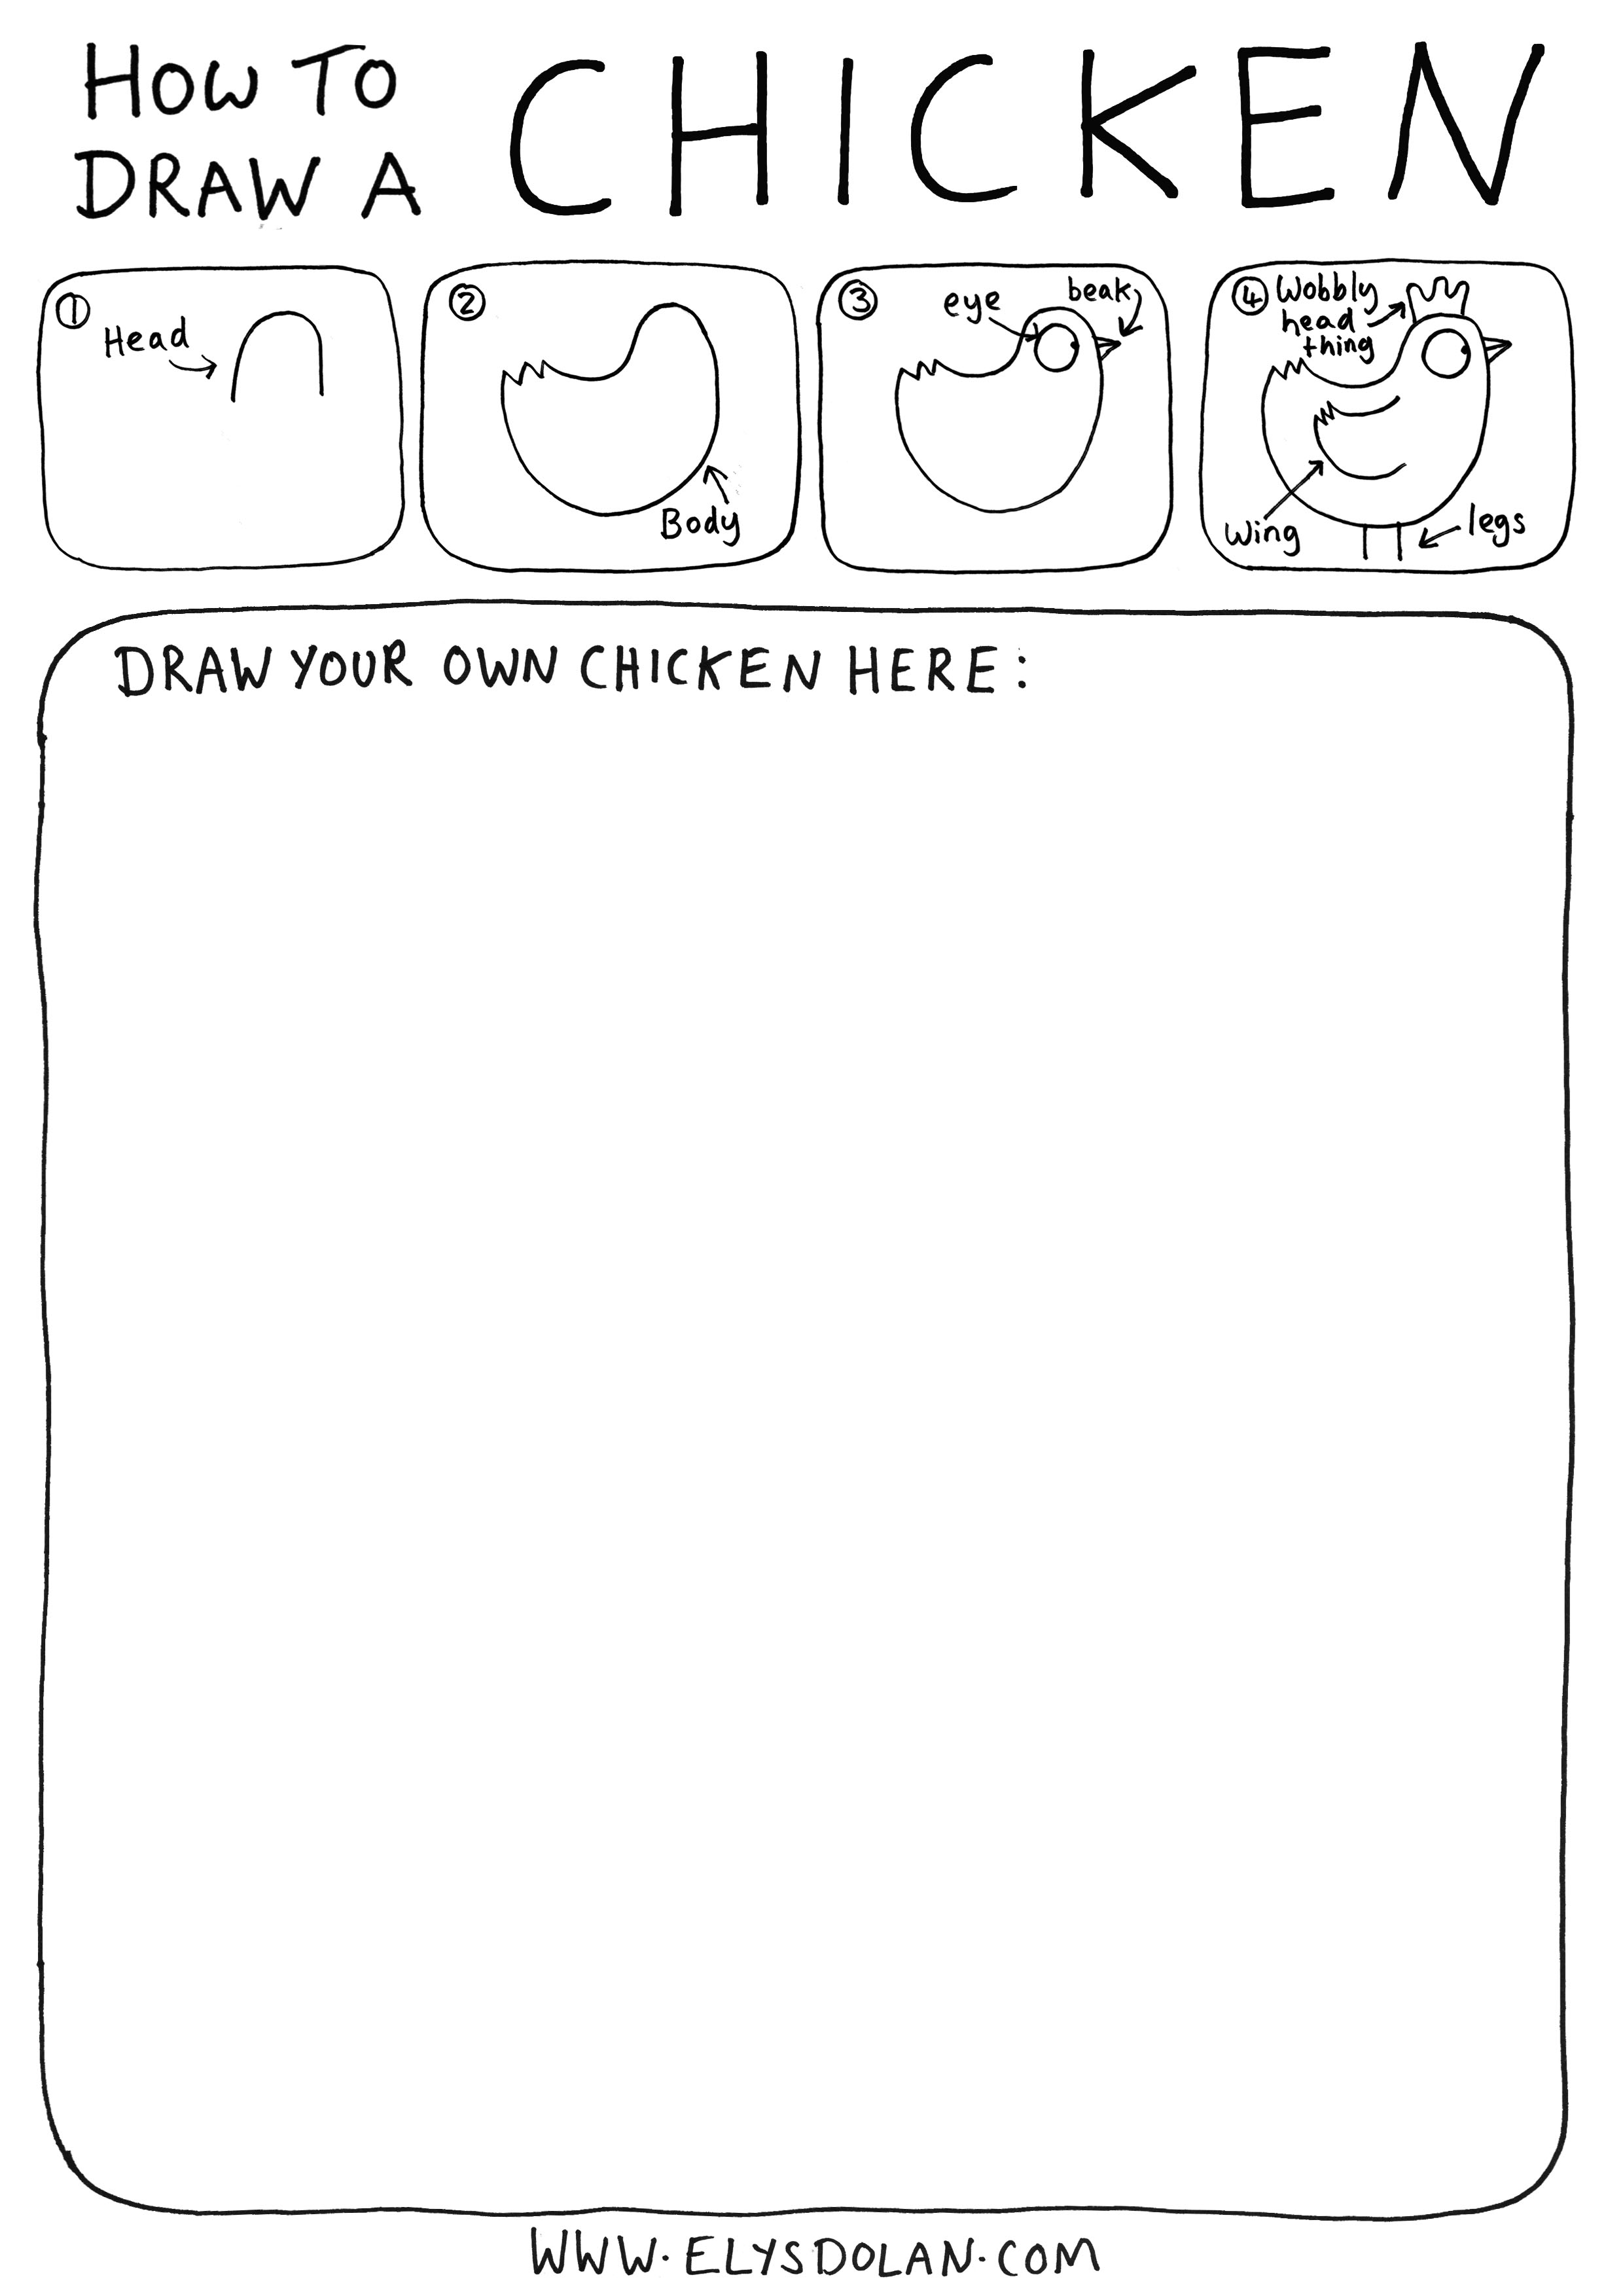 how to draw a chicken 2.jpg